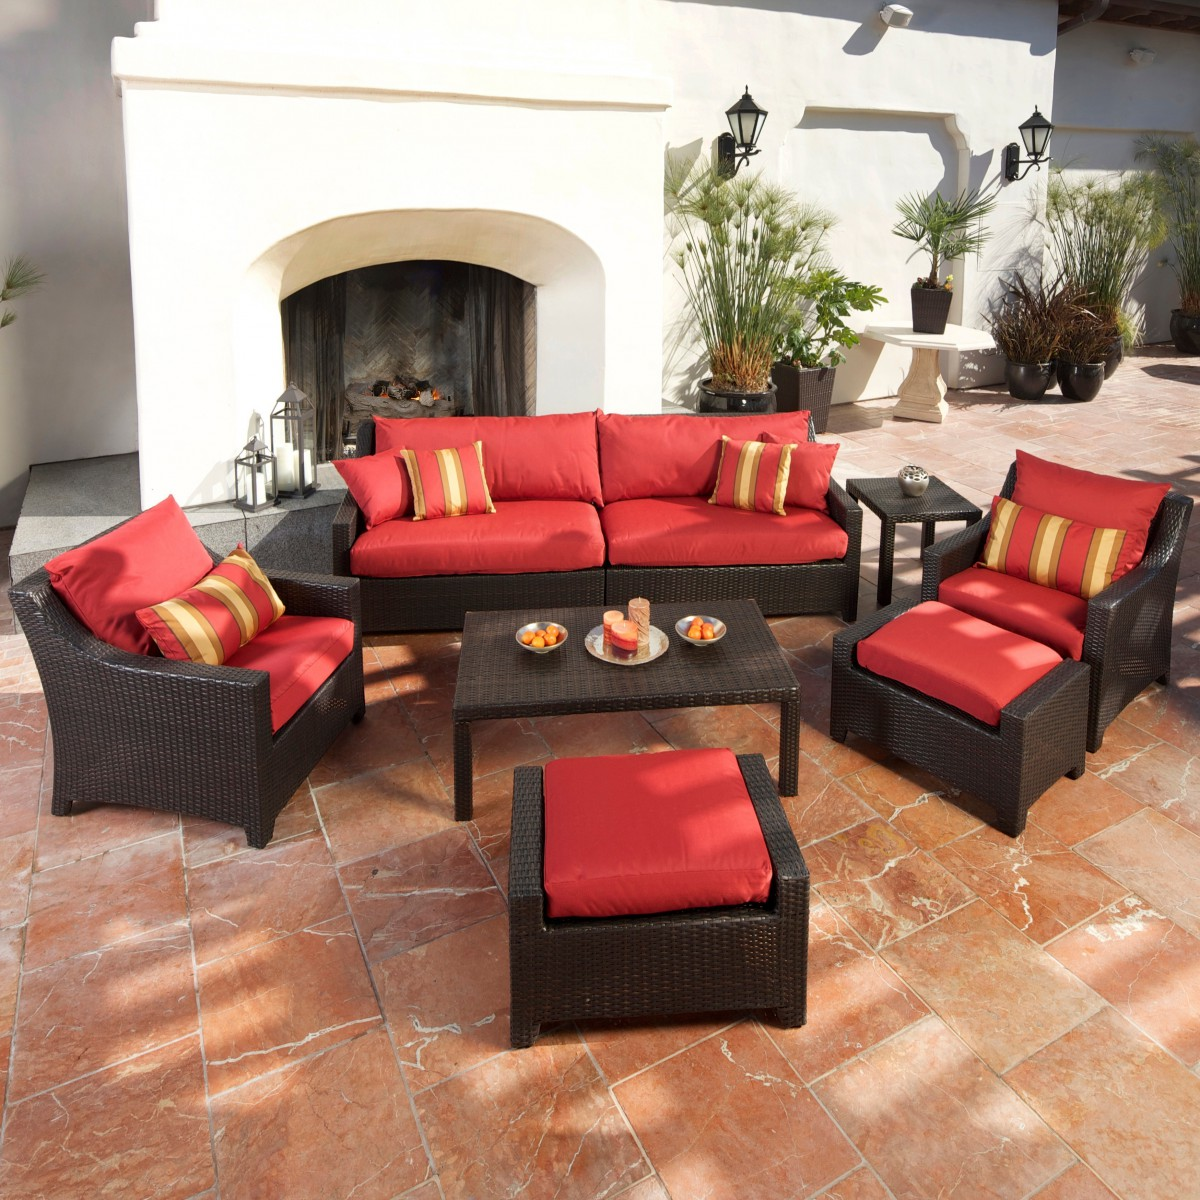 Cantina 7-piece Sofa Seating Set With Chairs, Ottomans, Side Table and Coffee Table